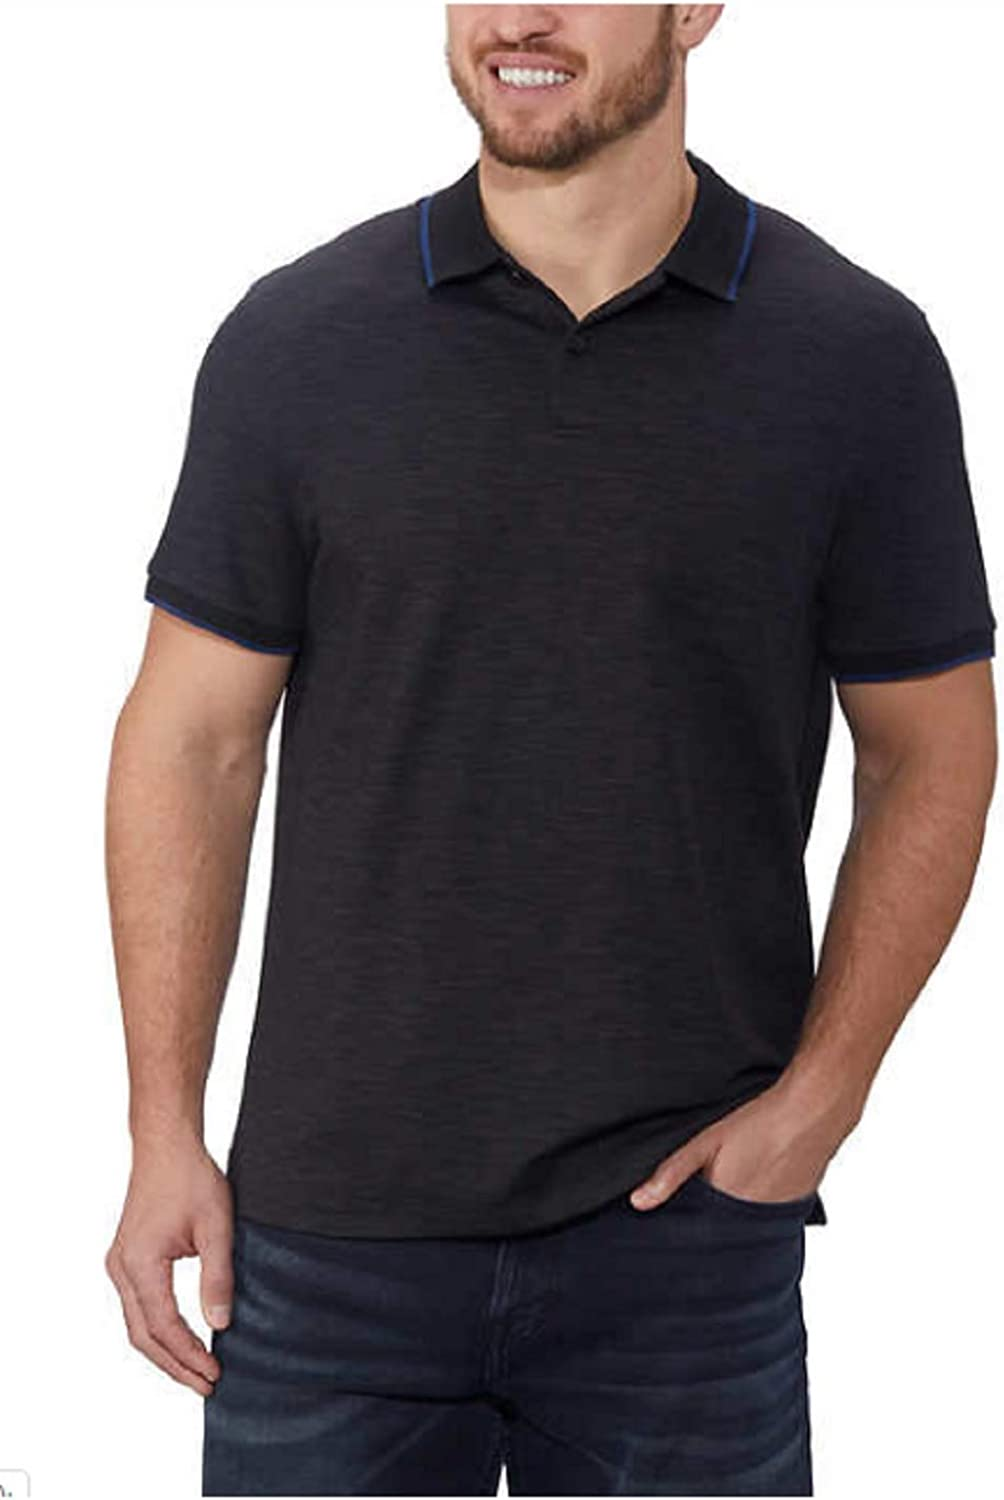 Calvin Klein Men's Lifestyle Excellence Liquid Touch Polo Shirt Manufacturer regenerated product